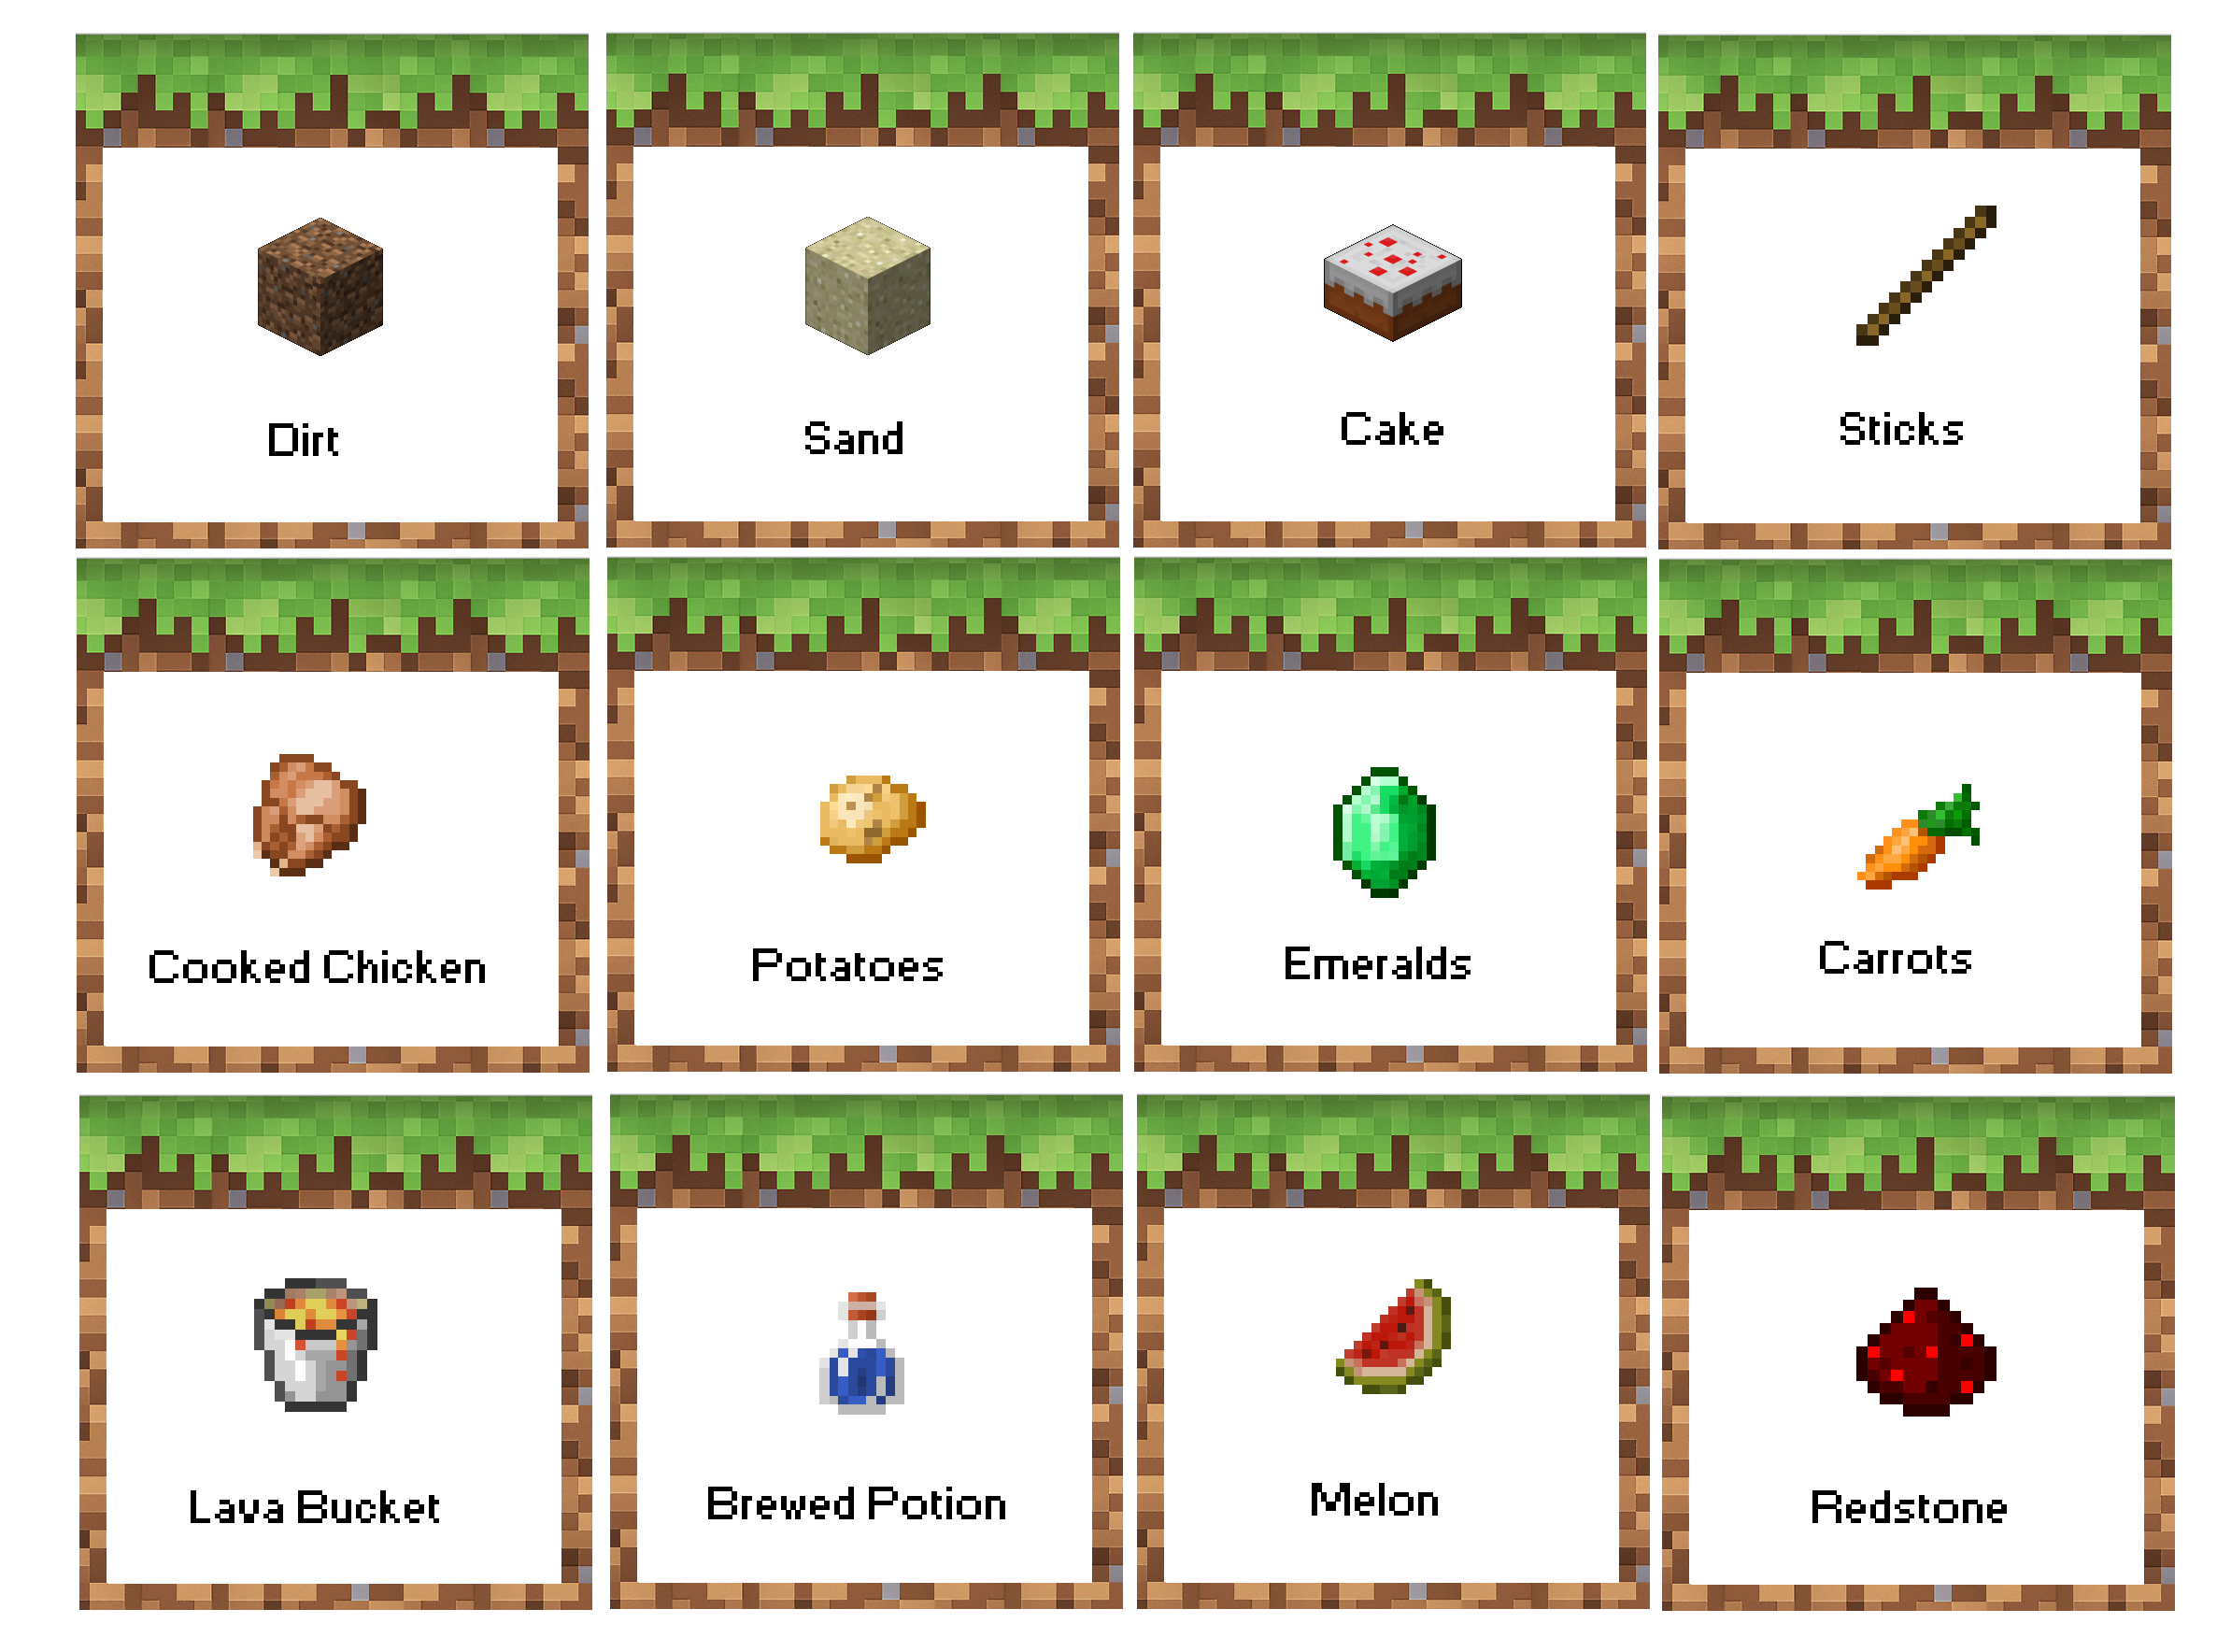 Minecraft Birthday Party Food Labels Free Printable Menu Based On Dirt Coco Crispy Treats Sand Ri Minecraft Food Minecraft Birthday Minecraft Food Labels